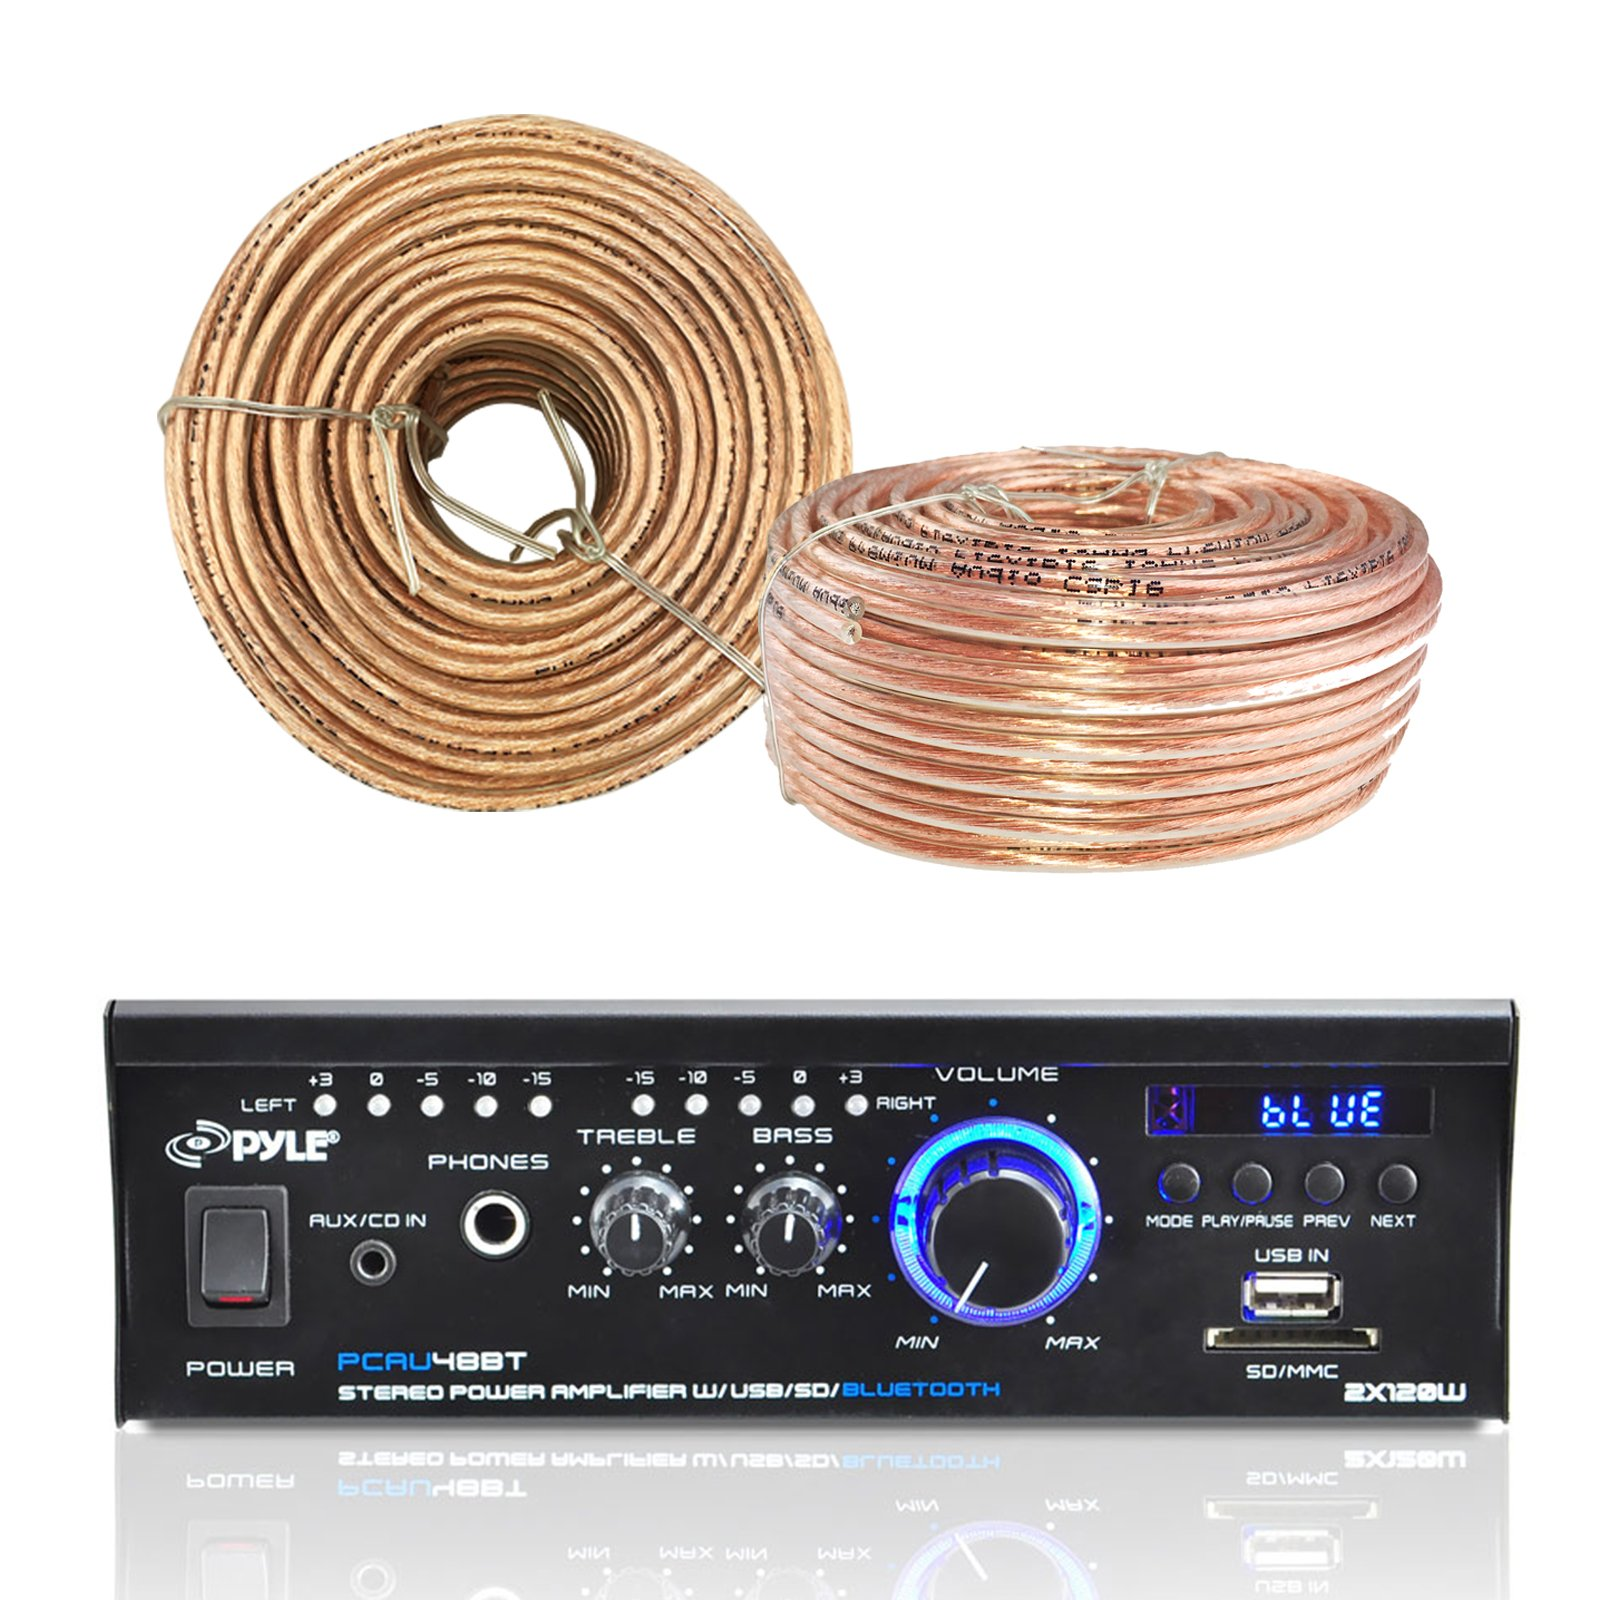 Pyle PCAU48BT Amplifier Receiver with Bluetooth USB/SD Readers AUX CD Inputs & LED Display, Enrock Audio 18 AWG Gauge 100 Feet Speaker Wire Cable